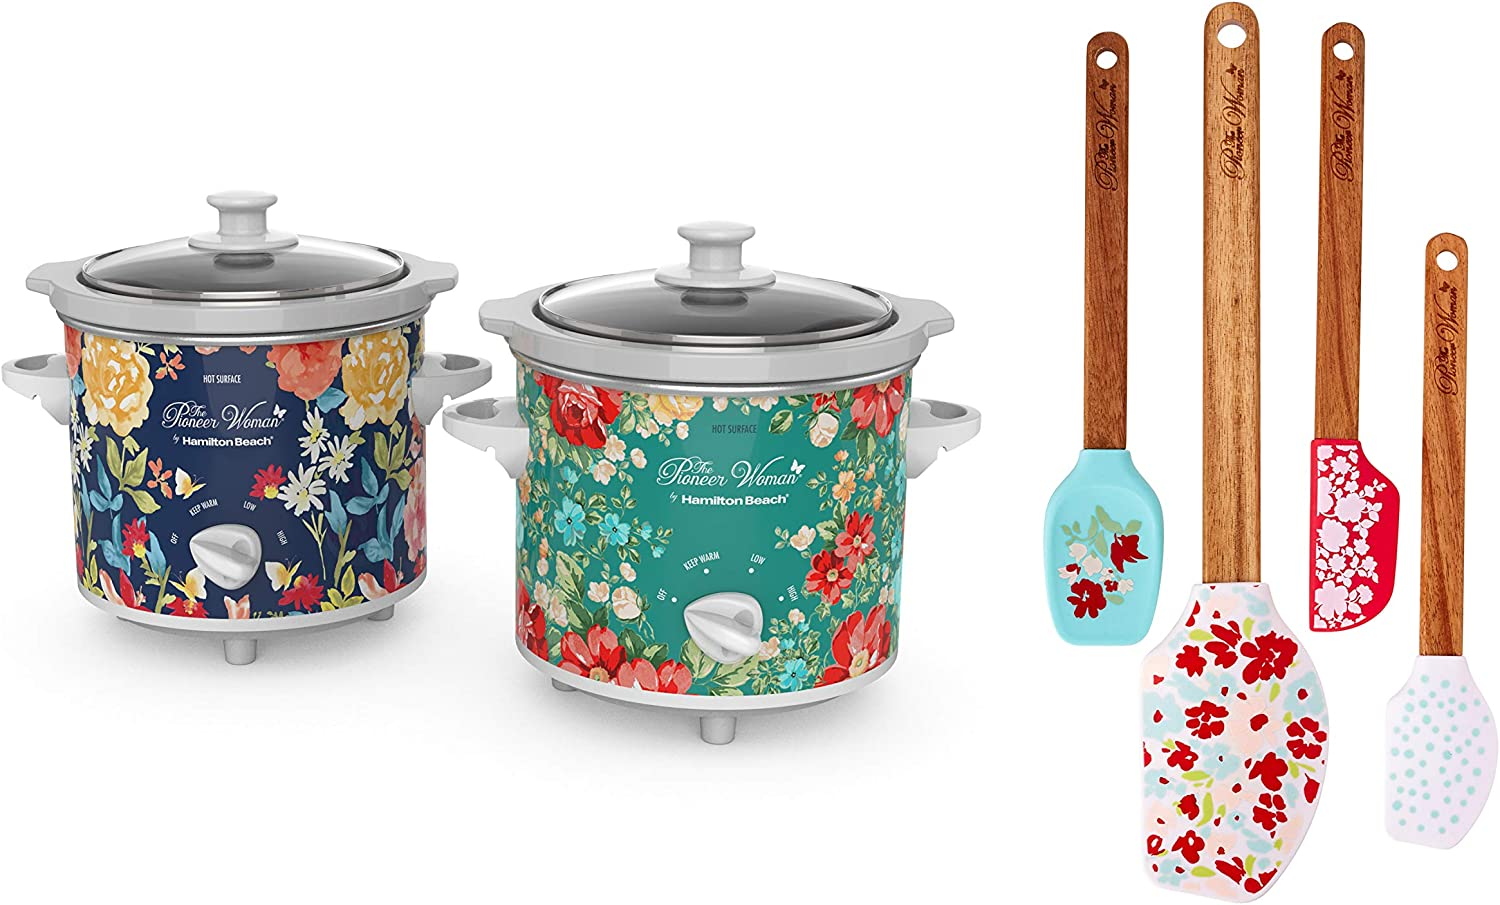 The Pioneer Woman 1.5-Quart Slow Cooker| Set of 2| Fiona Floral & Vintage Floral by Hamilton Beach Bundle Garden Party Silicone Spatula and Mini Spatula Set| 4- Pack| Teal|